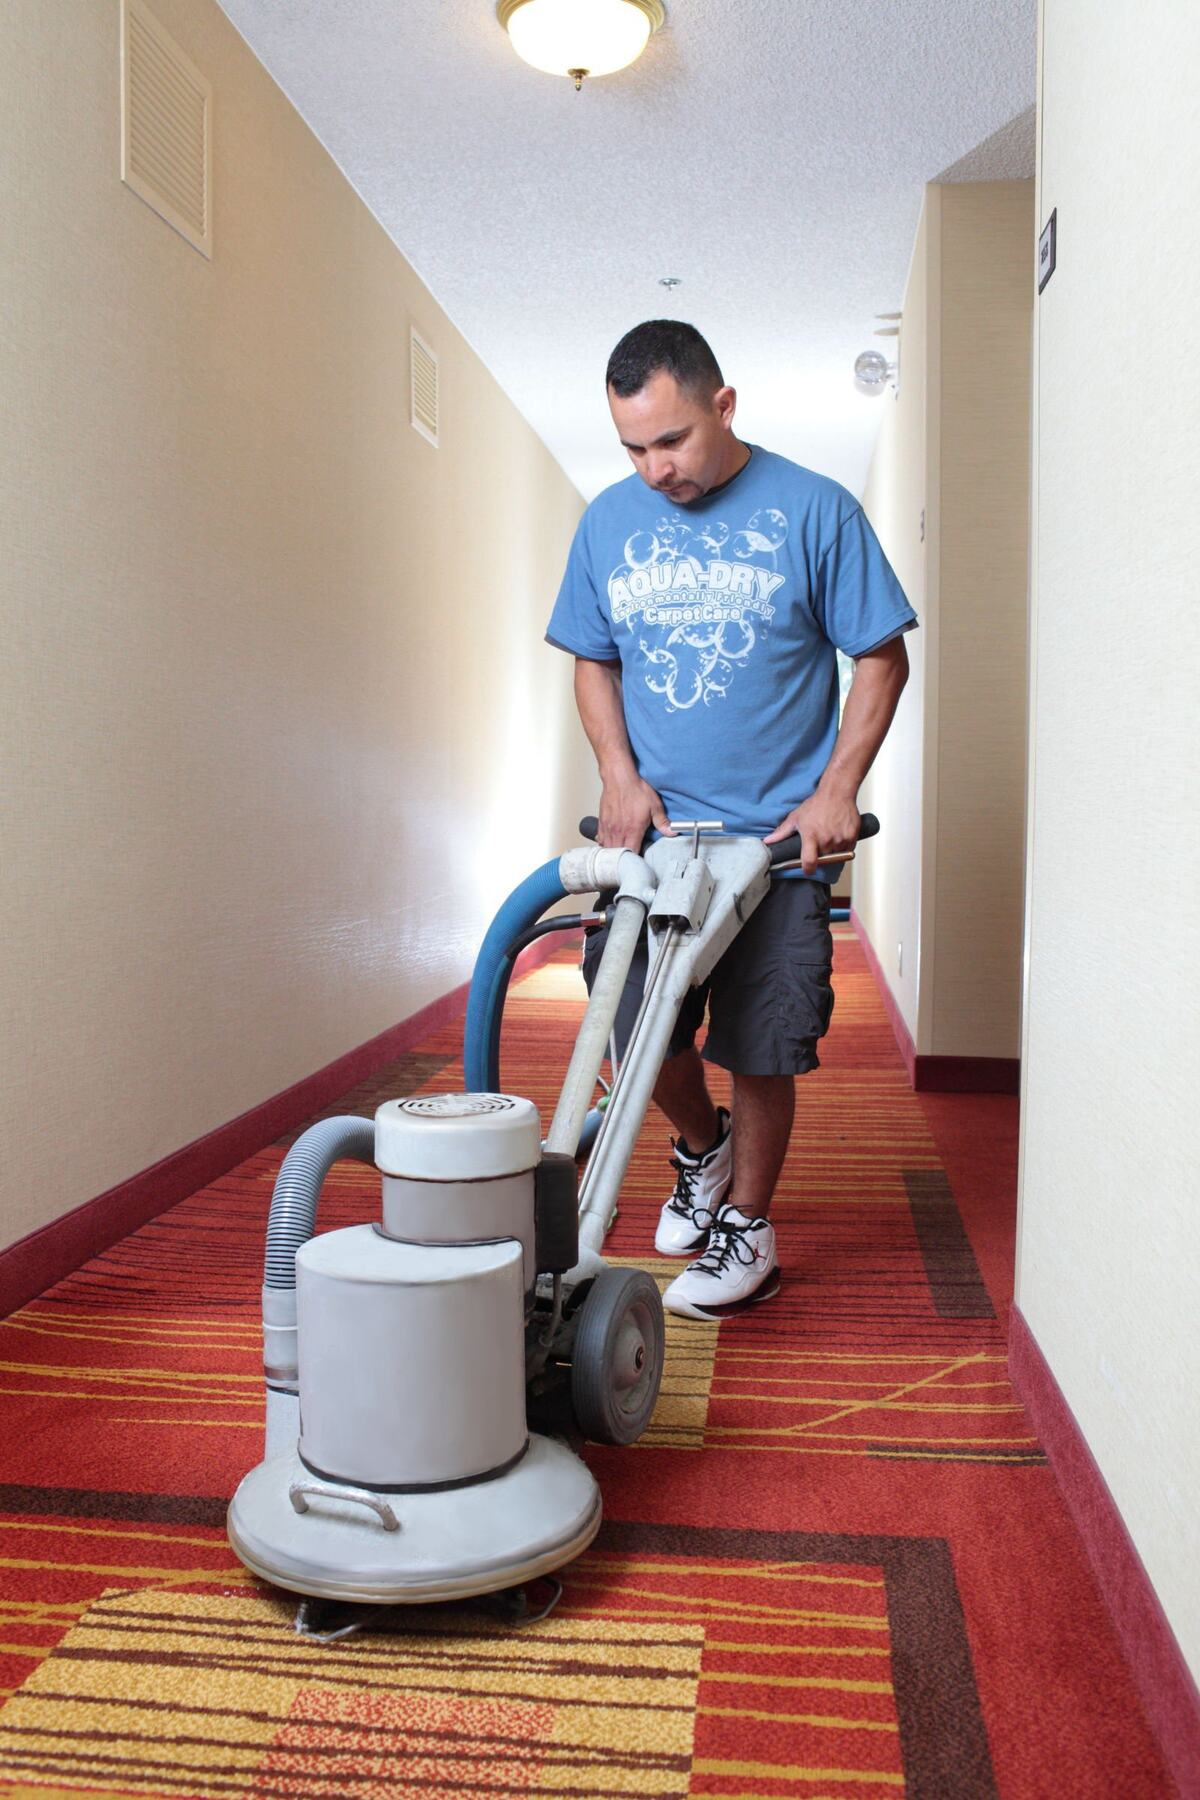 Cost of Carpet Cleaning?